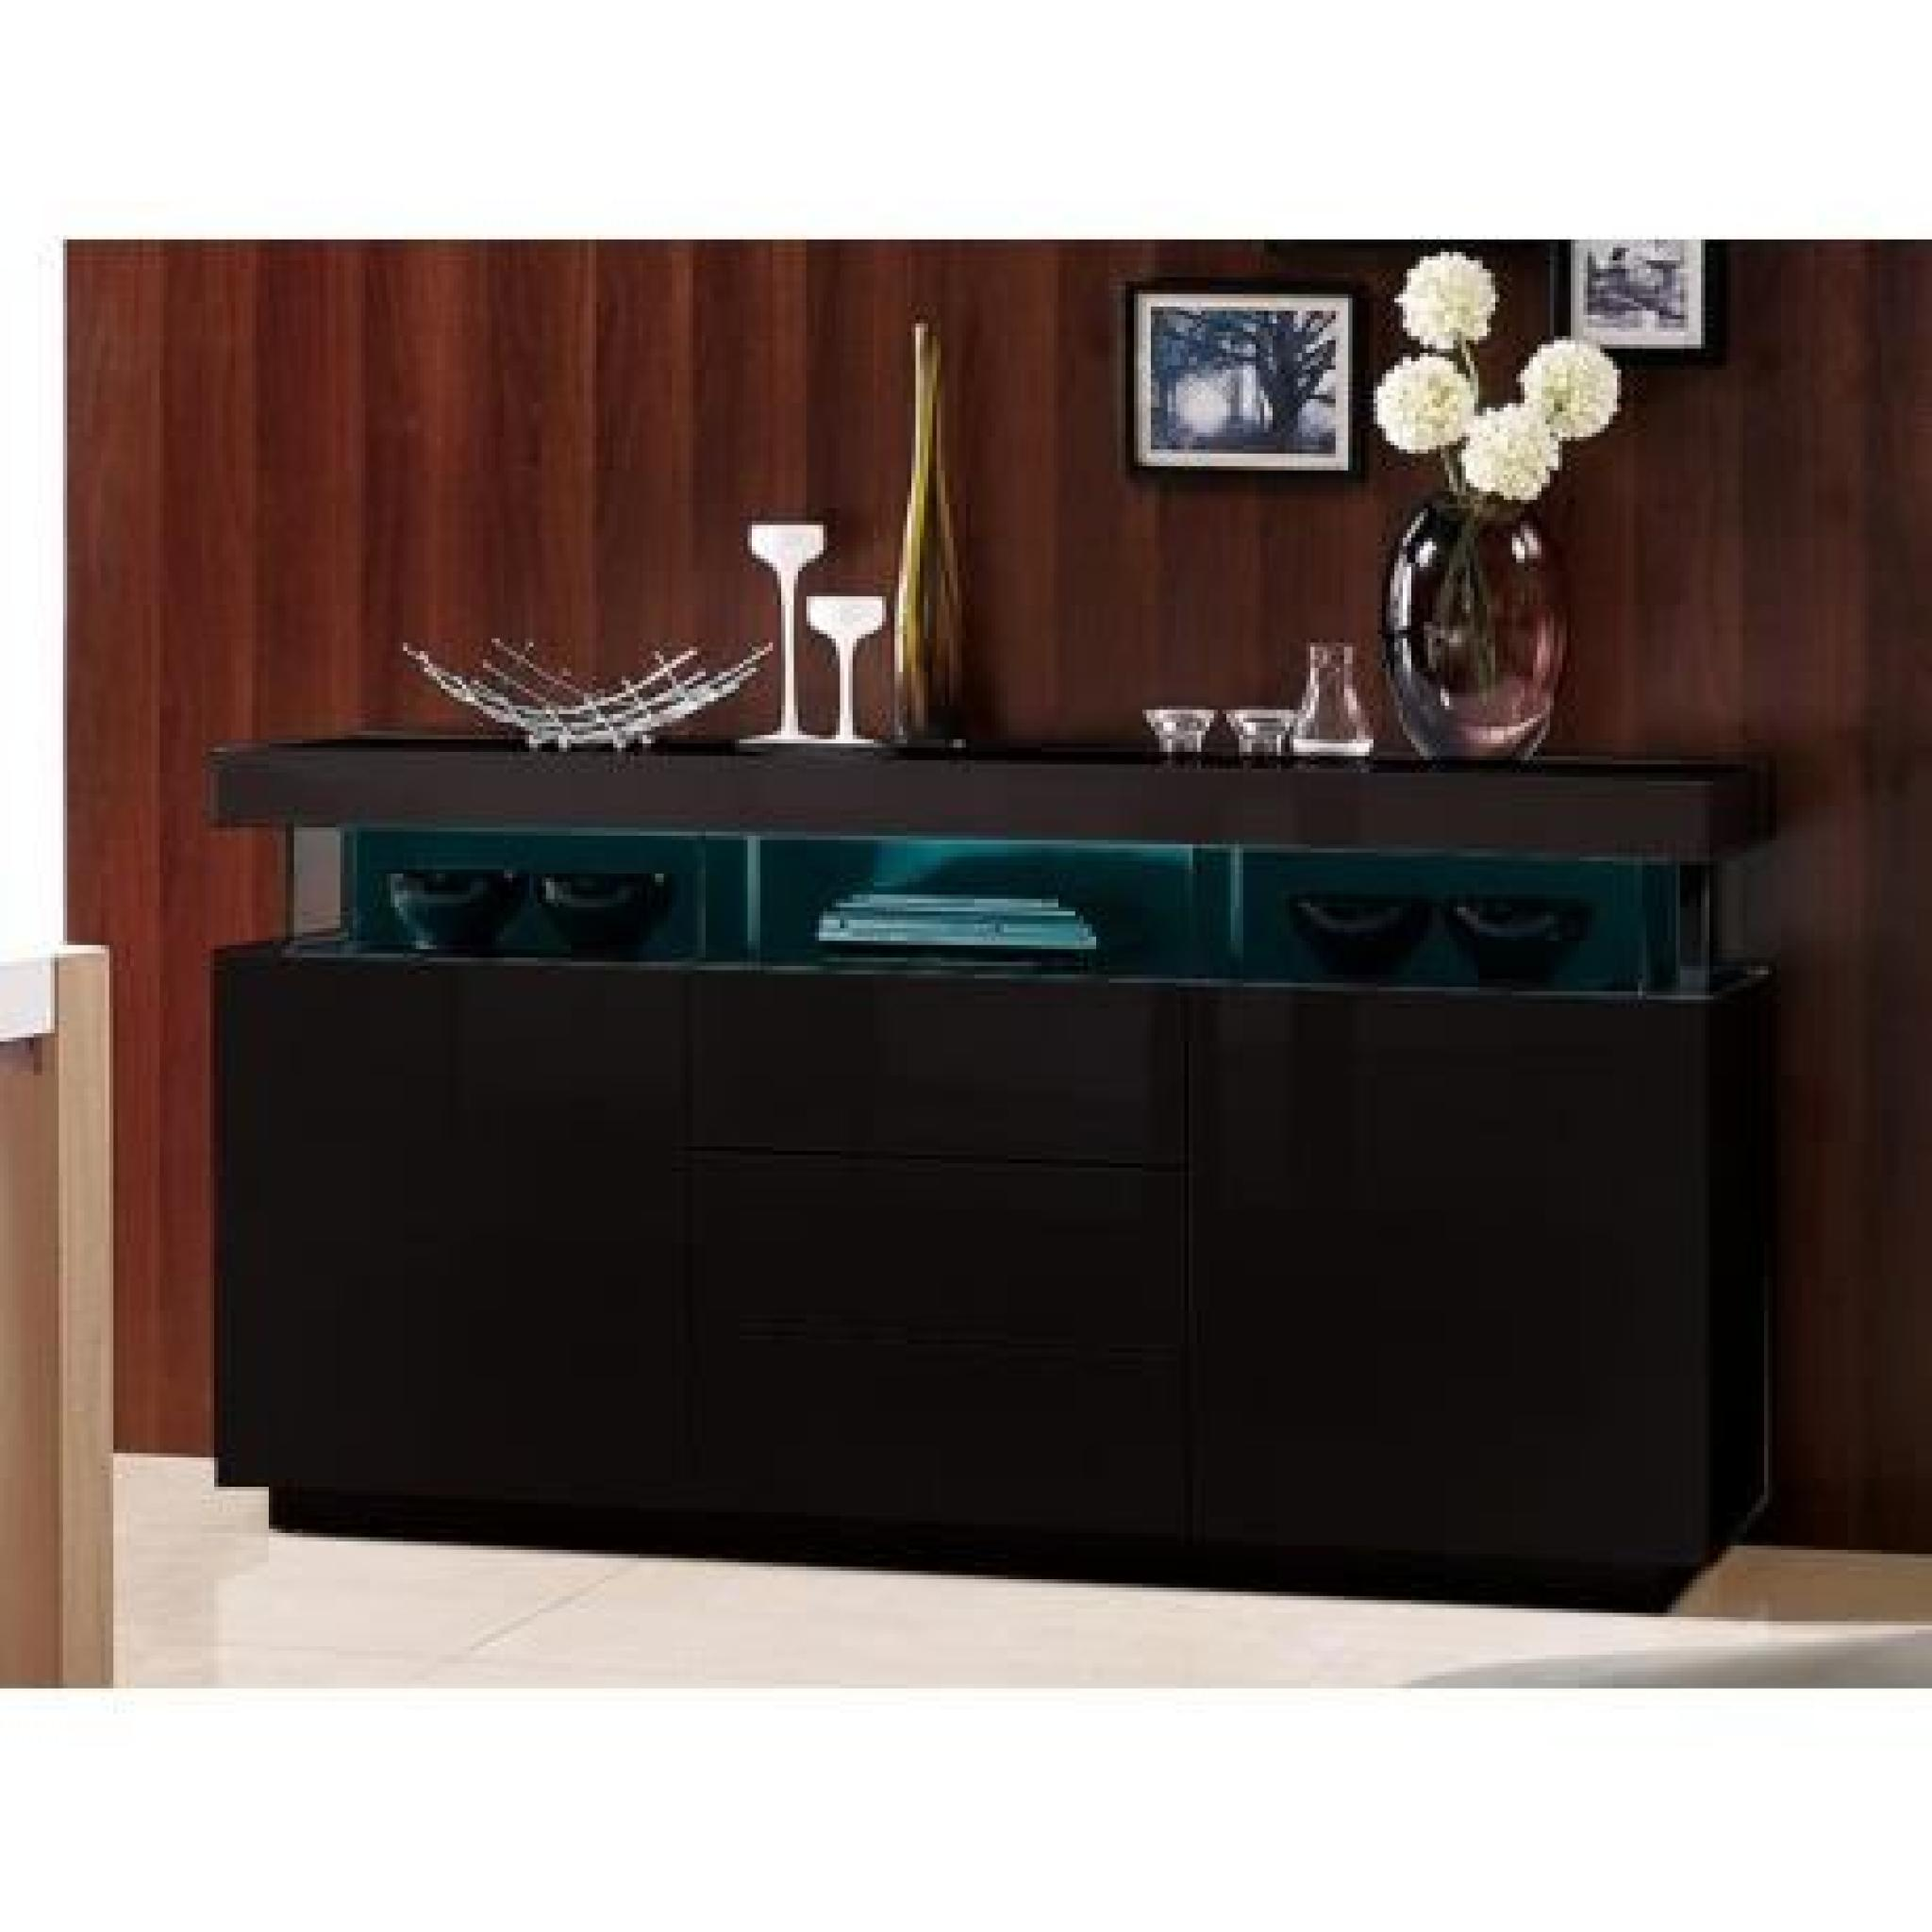 buffet fabio mdf laqu noir leds tiroirs portes achat vente buffet noir laque ikea with buffet. Black Bedroom Furniture Sets. Home Design Ideas